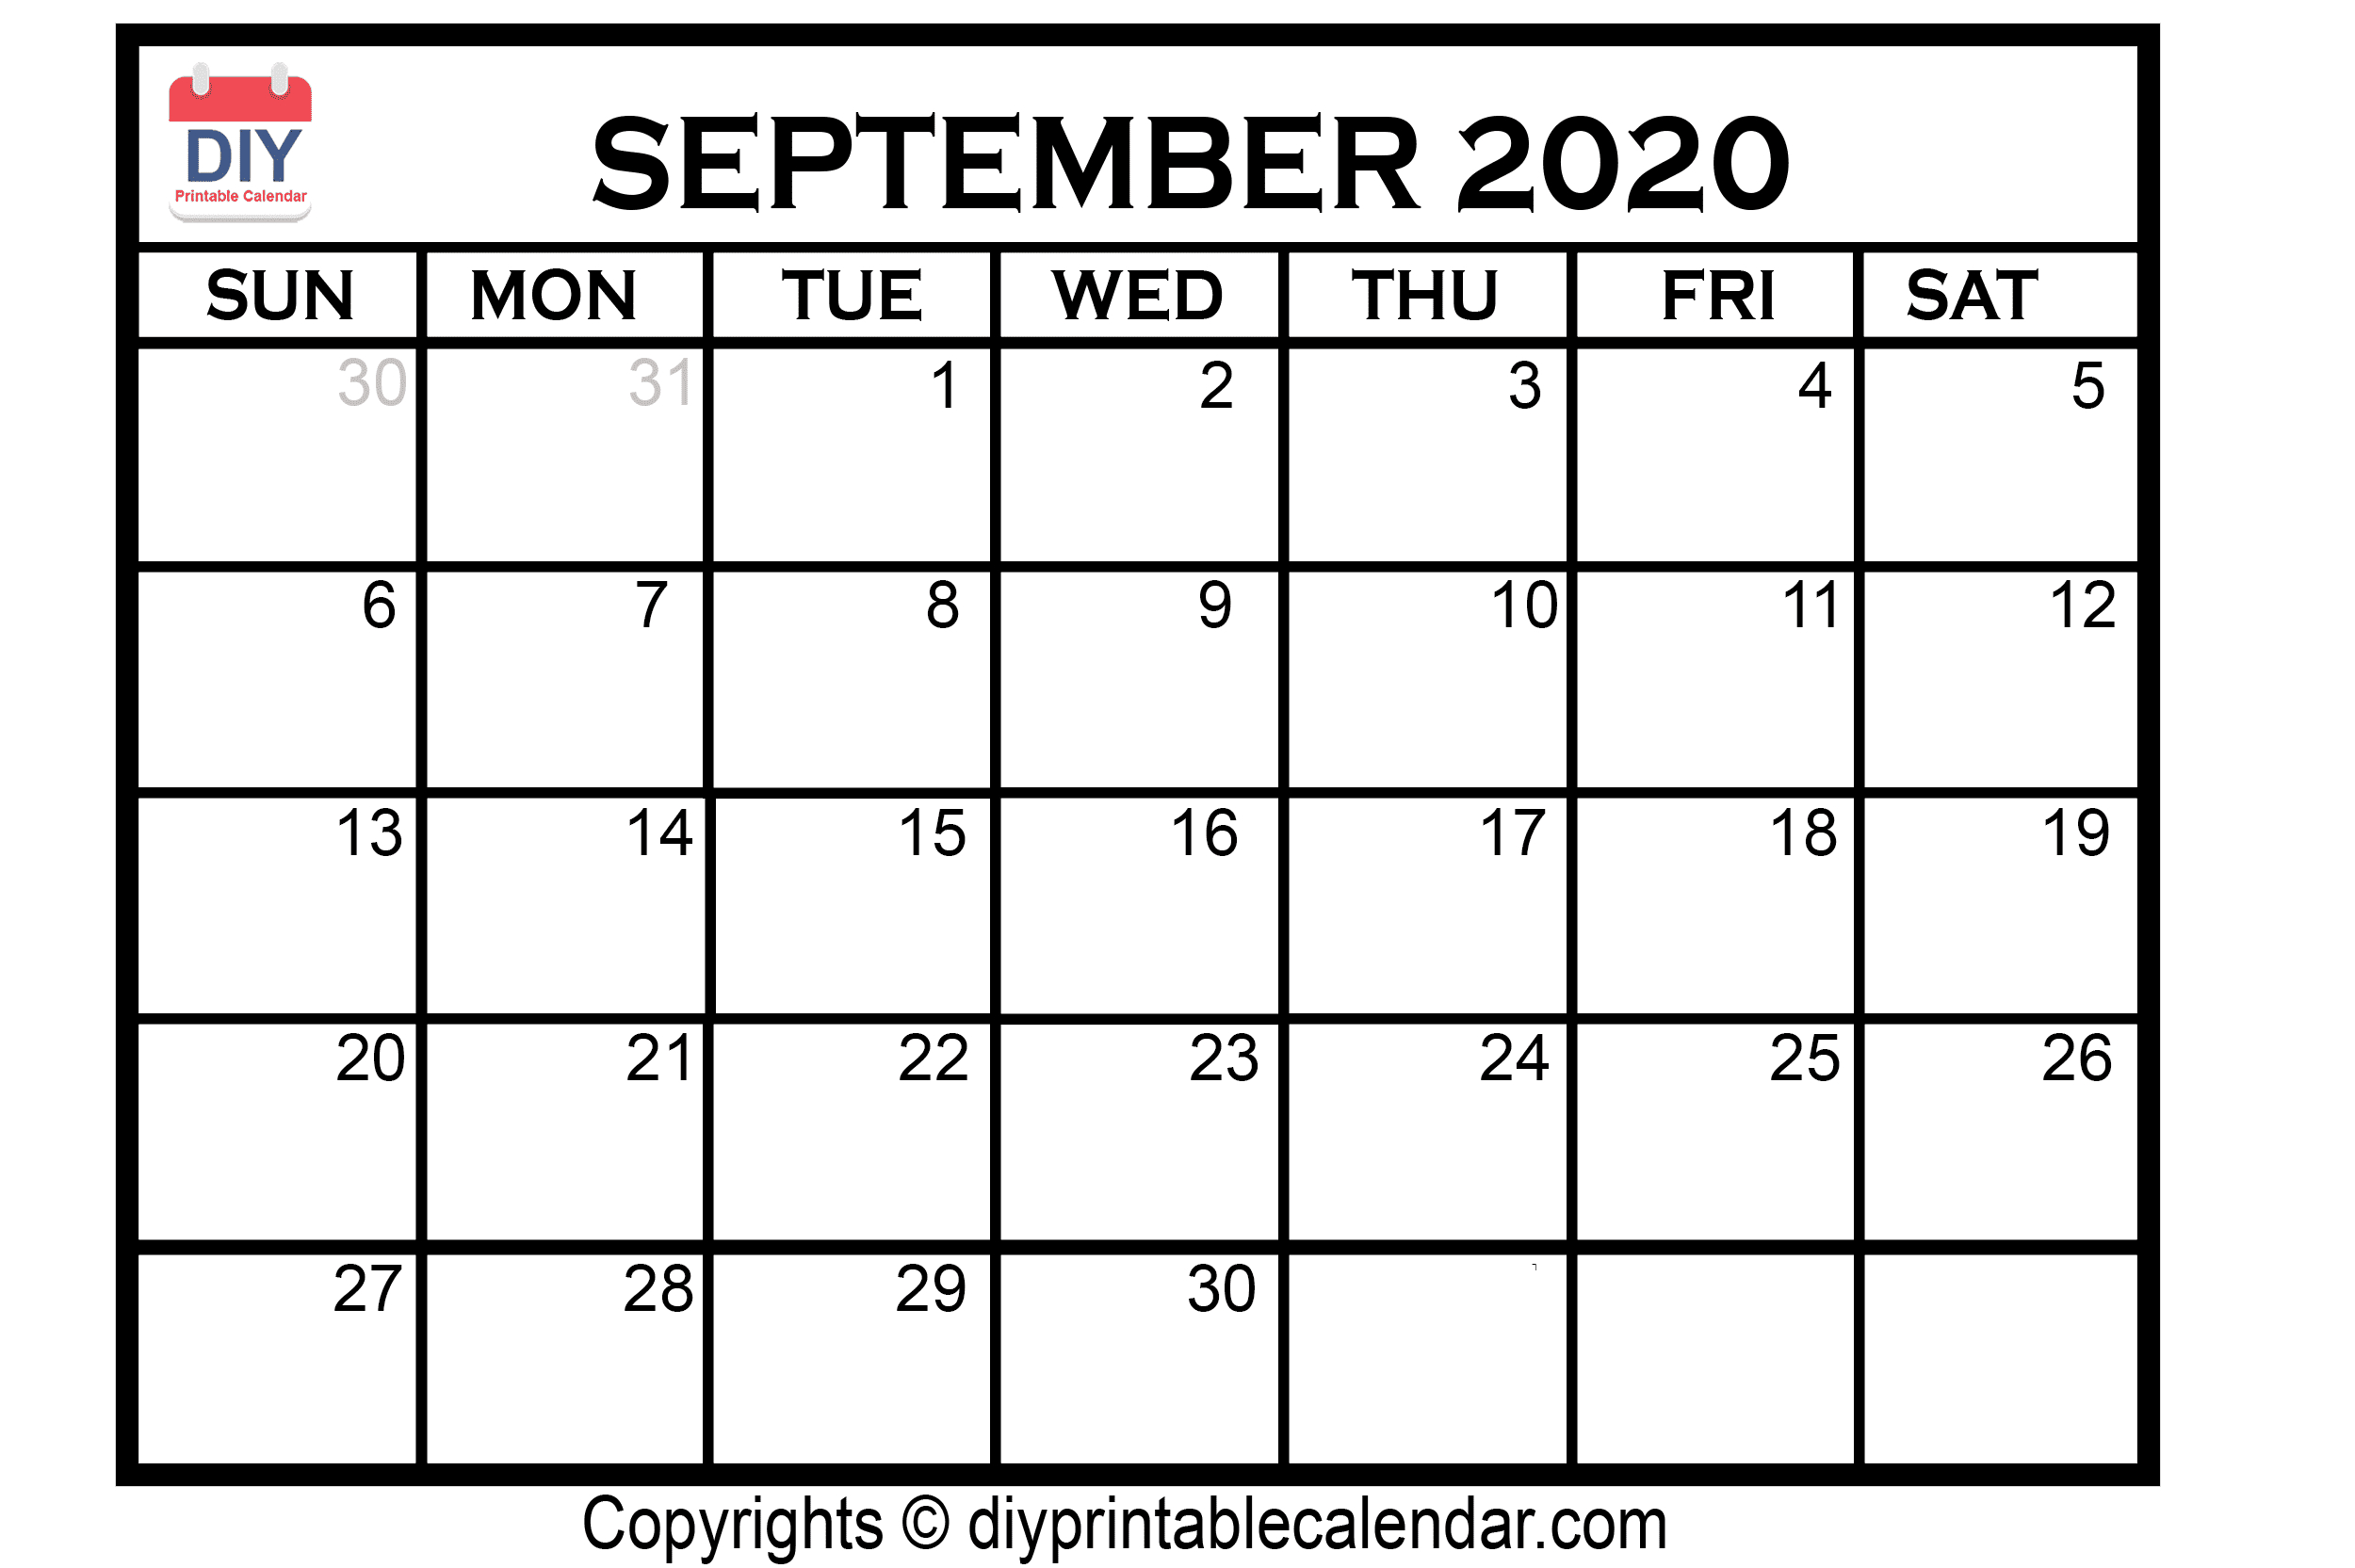 September 2020 Printable Calendar Template throughout Free Printable Monthly Calendar September 2020